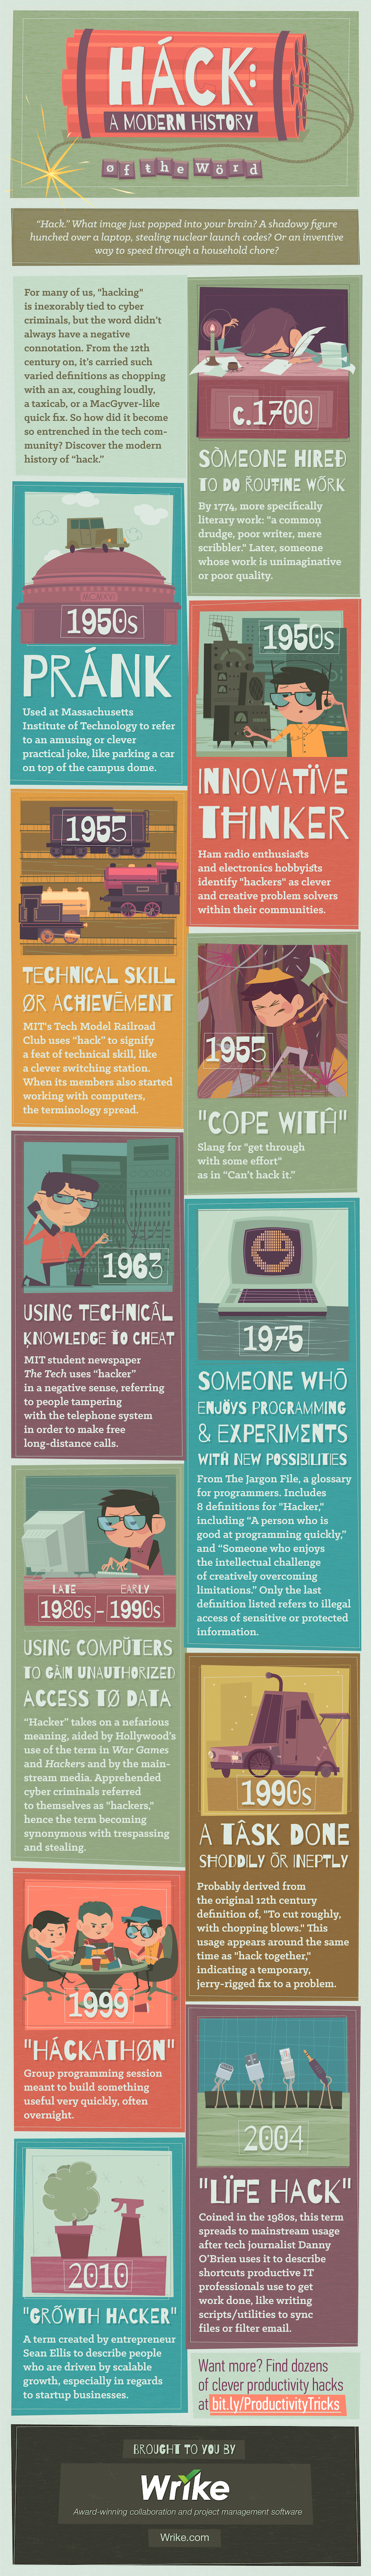 The History of the Word 'Hack' (#Infographic)